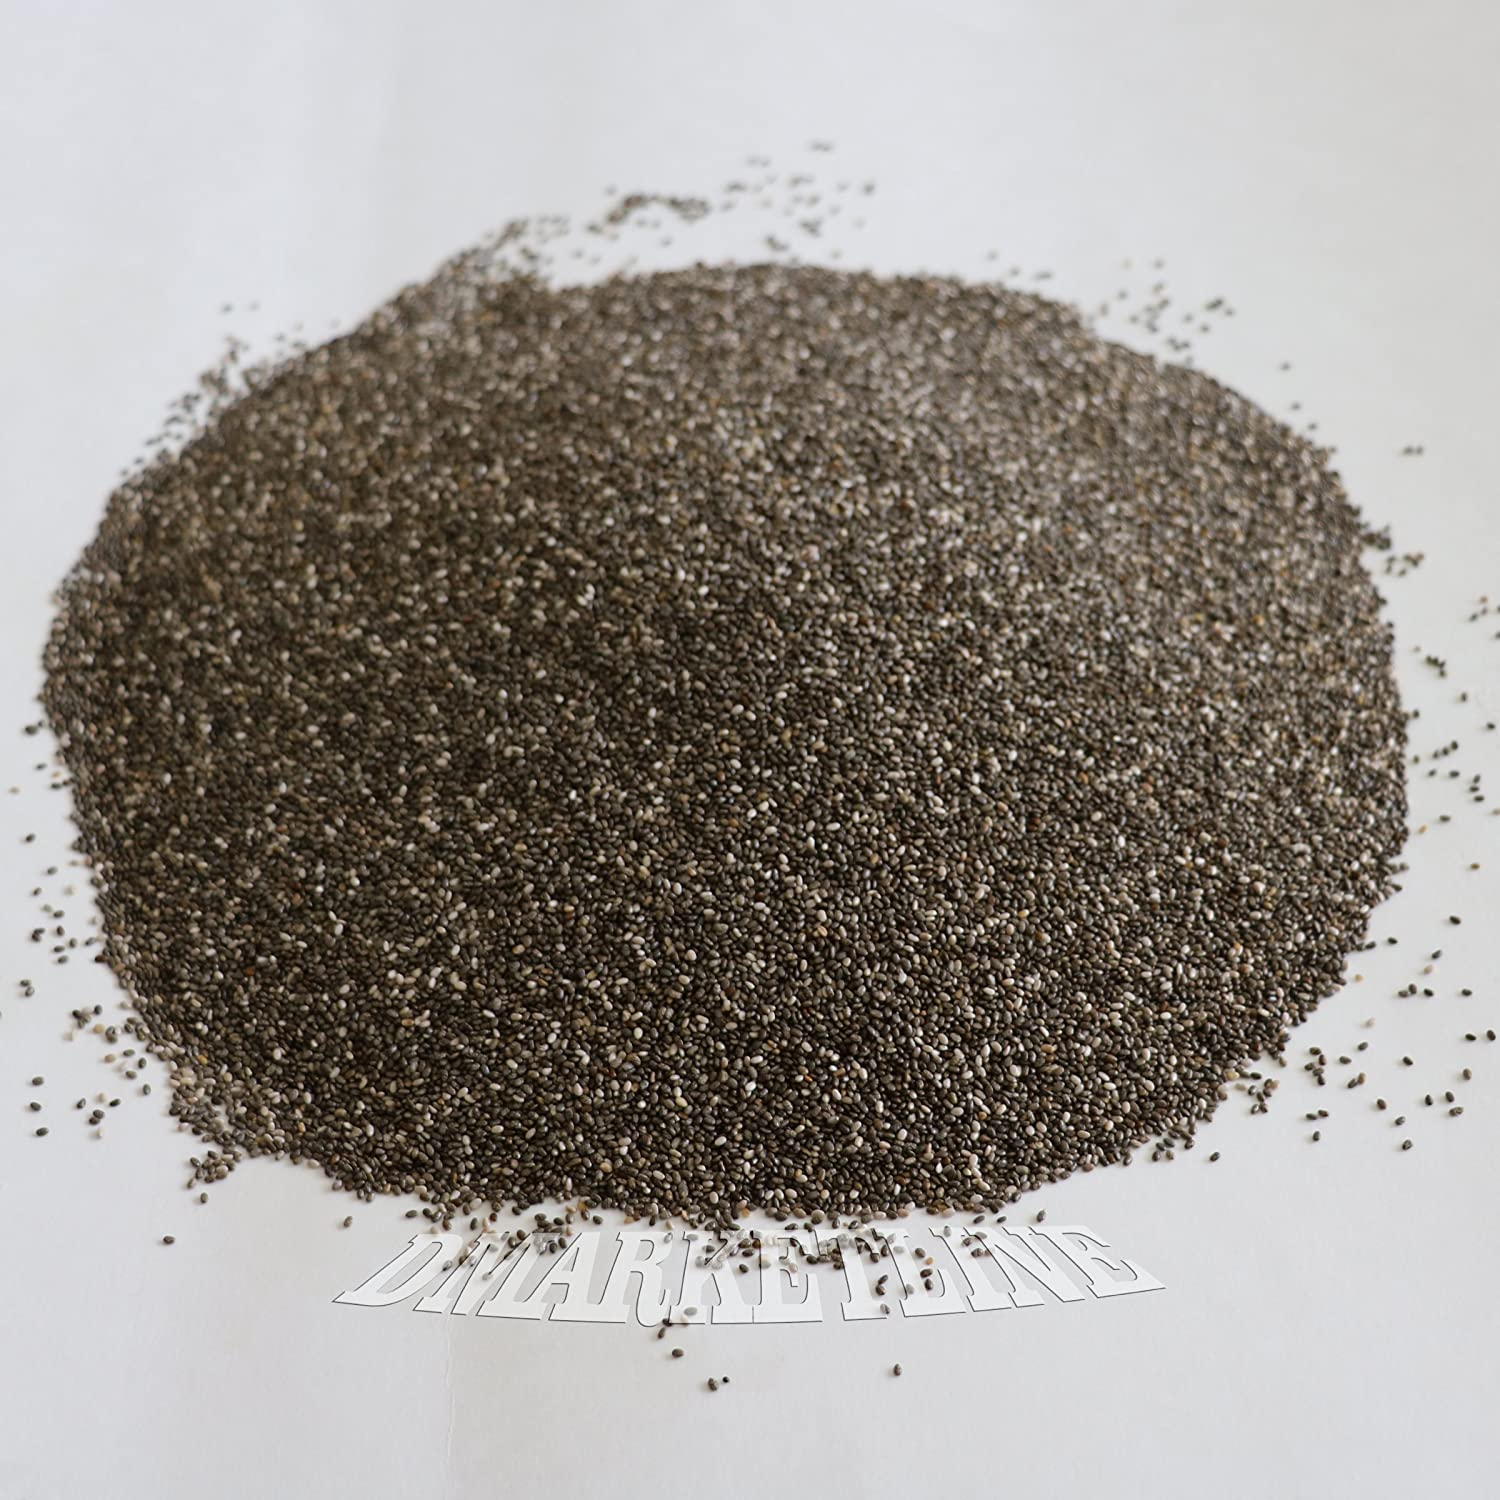 100% GROWN ORGANIC PURE PREMIUM BLACK CHIA SEEDS BULK VEGAN GLUTAN-FREE nonGMO (5 Lb): Amazon.com: Grocery & Gourmet Food